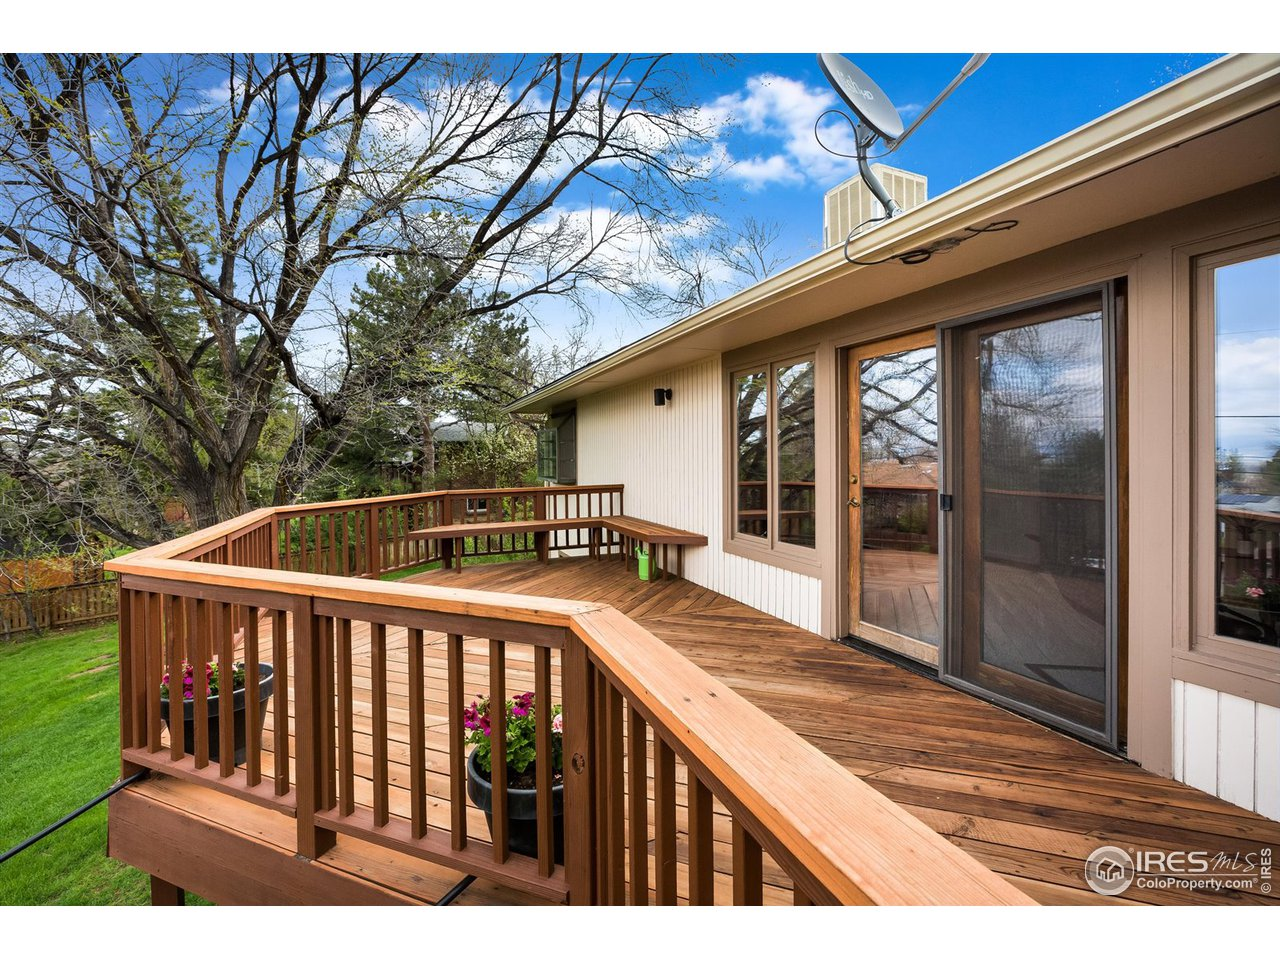 Wooden deck off of main level living area